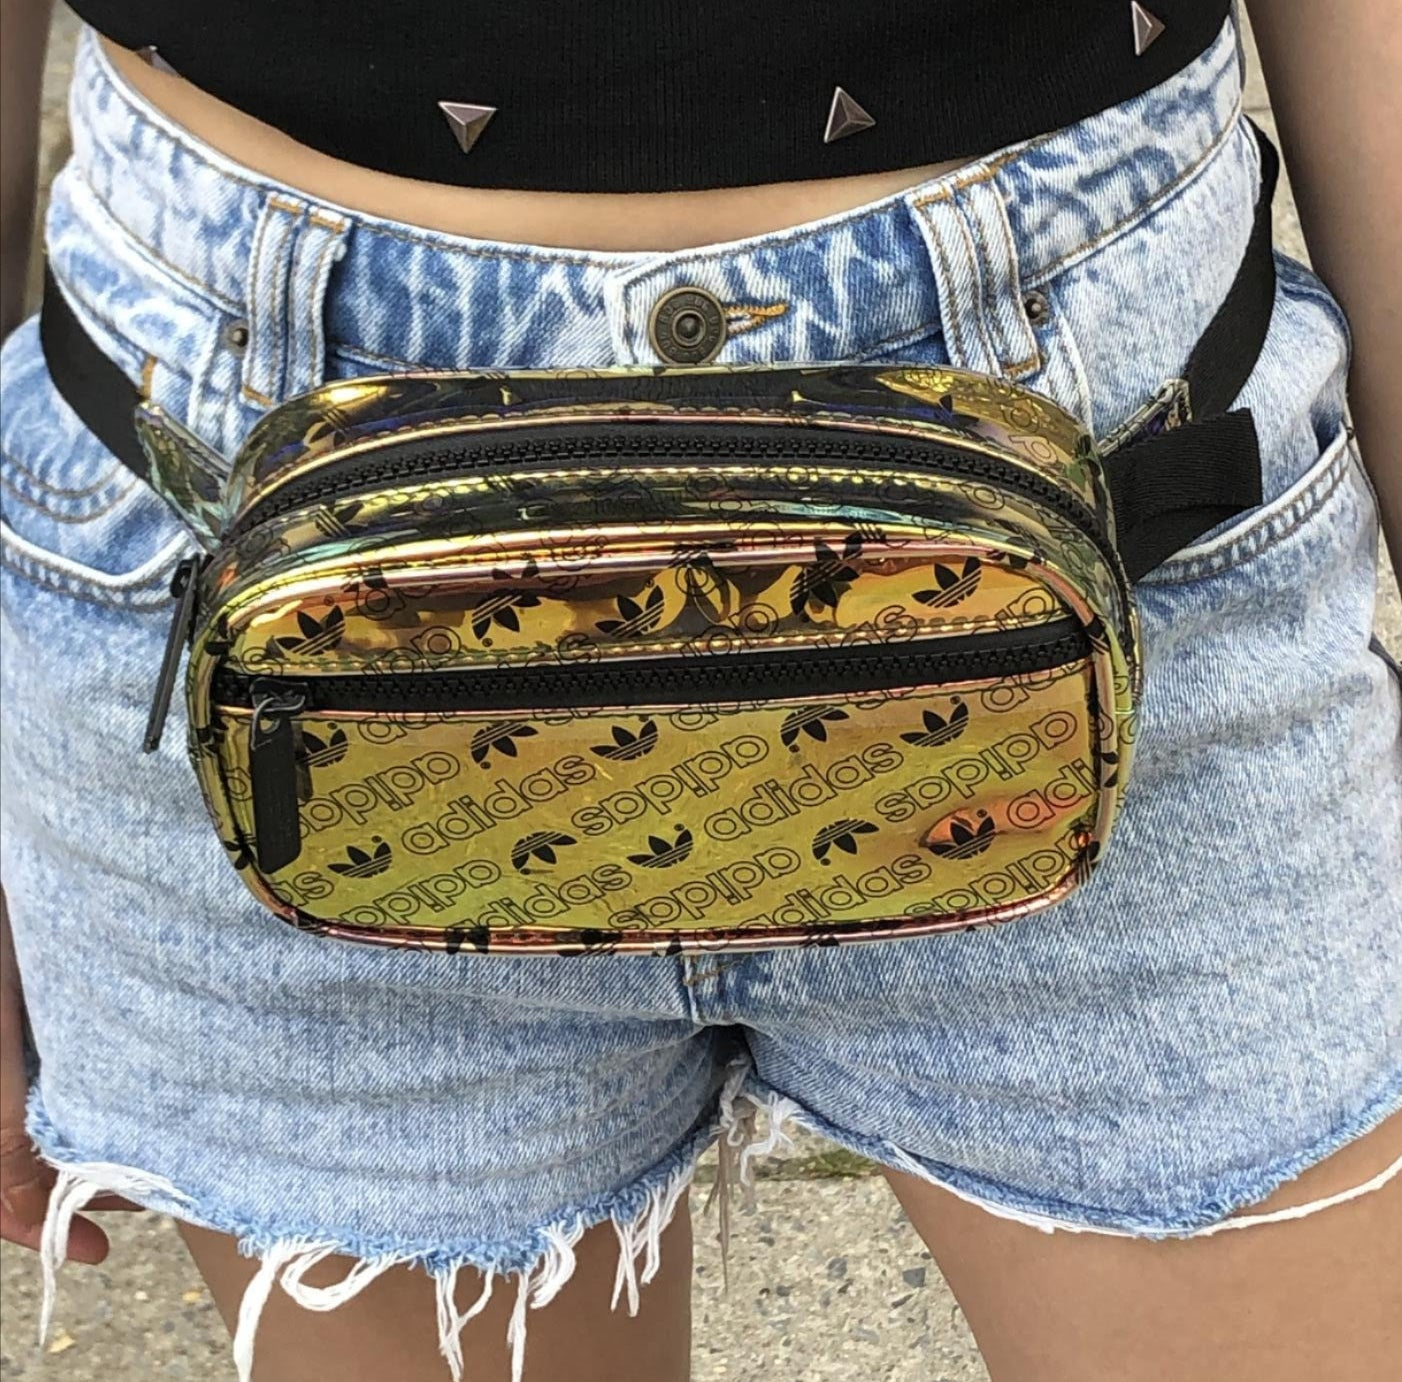 genevieve wearing a small gold iridescent waist pack covered in the adidas logo